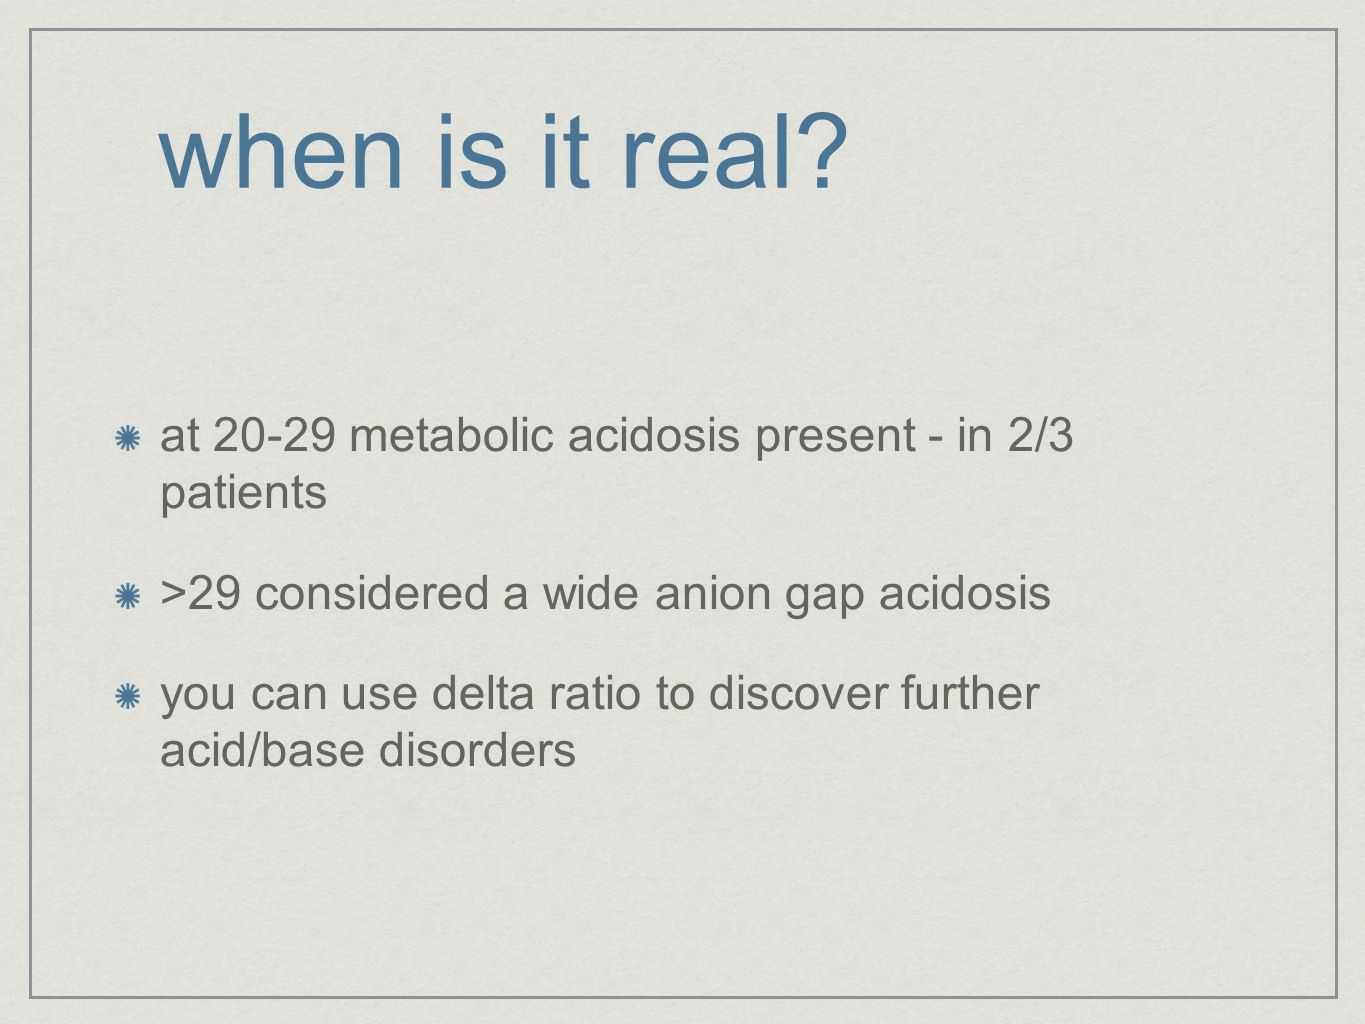 when is it real at metabolic acidosis present - in 2/3 patients